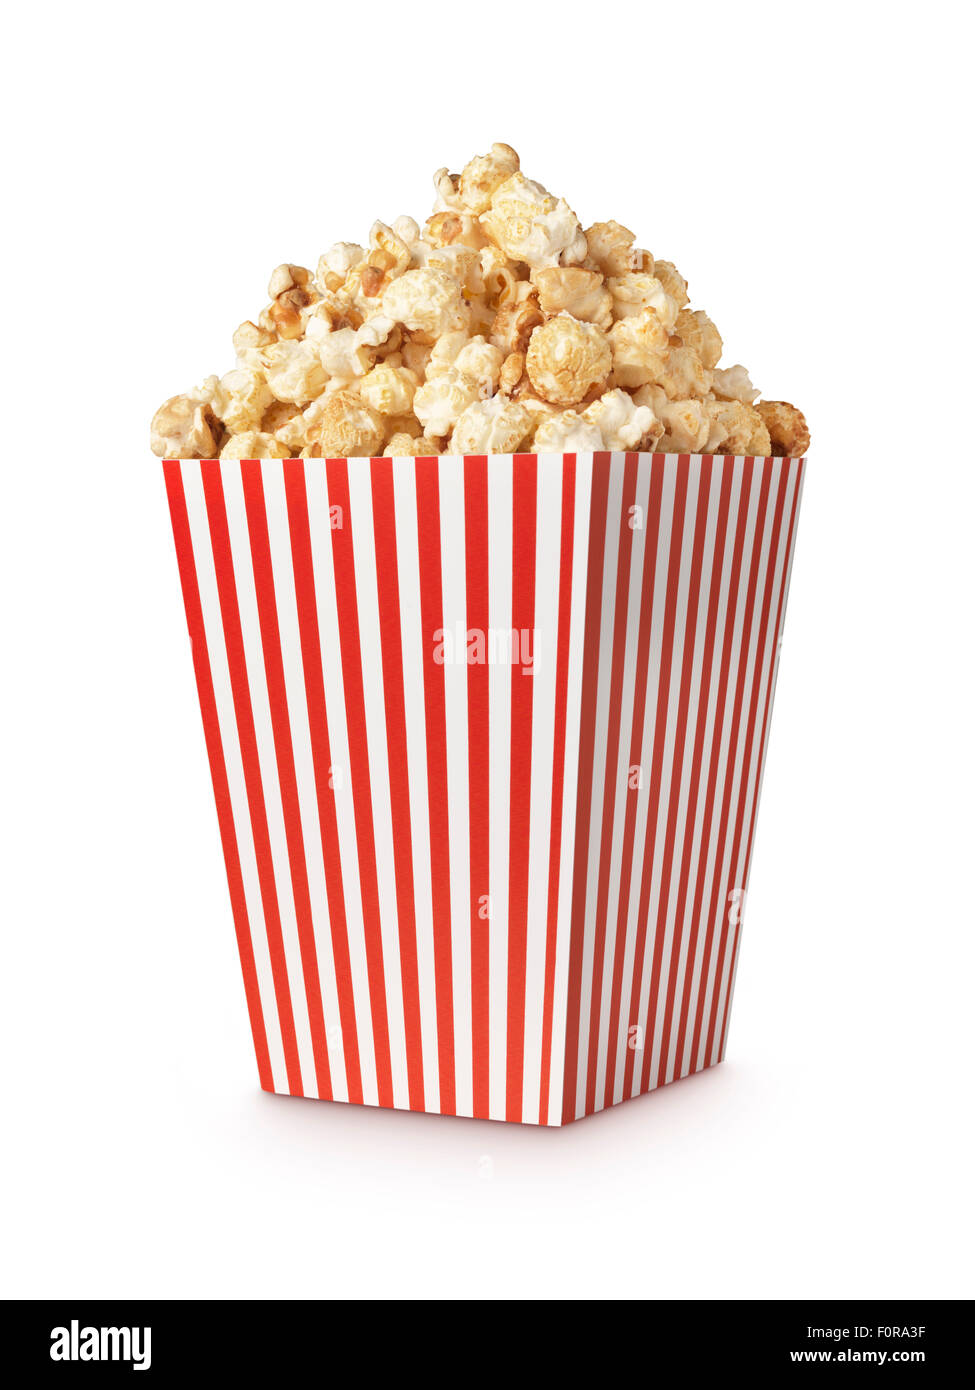 Movie Popcorn isolated on white with clipping path - Stock Image